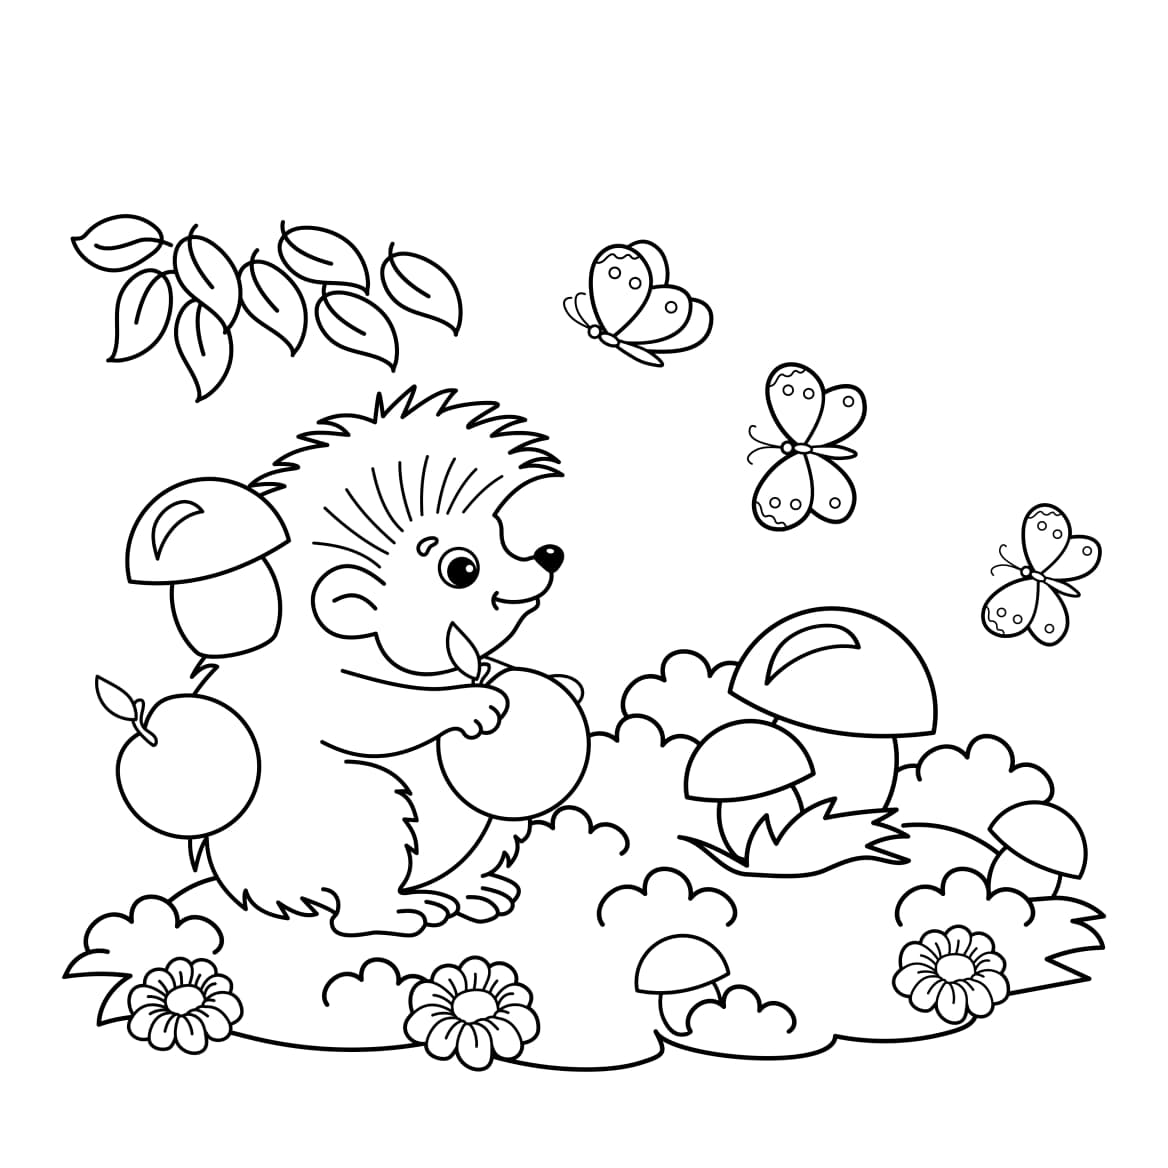 hedgehog colouring-in ethical and eco toys